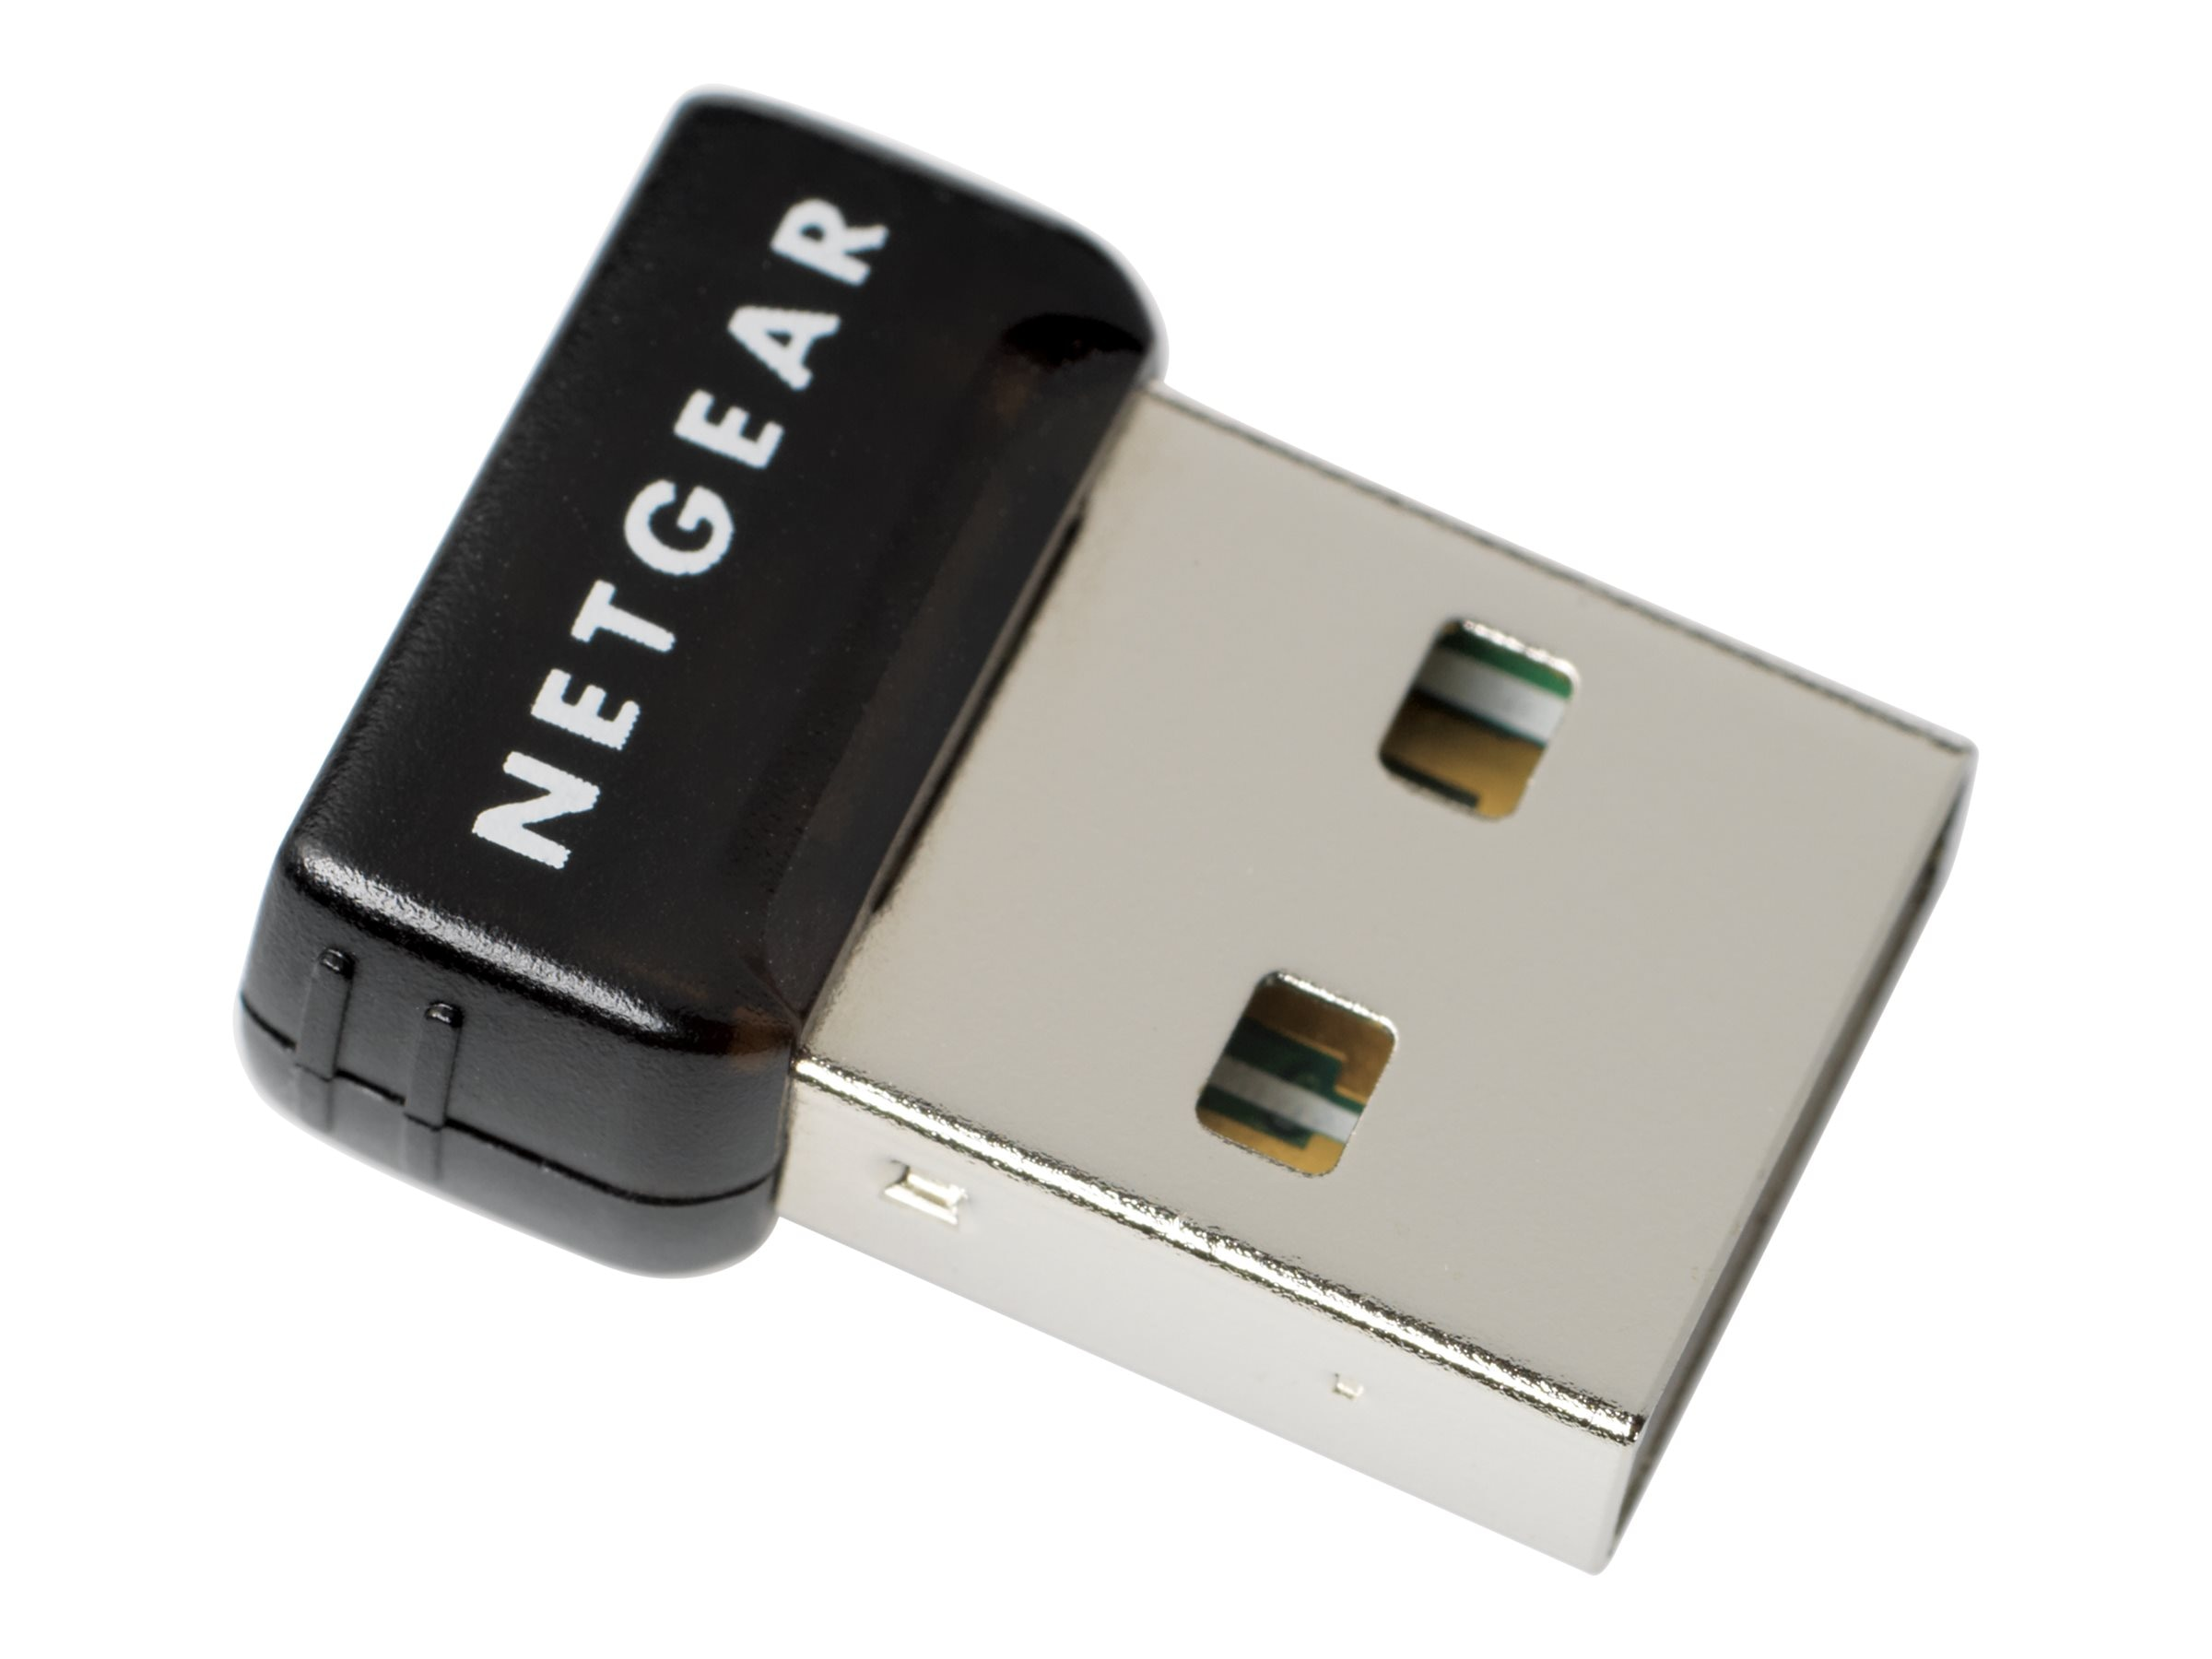 Netgear G54 N150 Wireless USB Micro Adapter